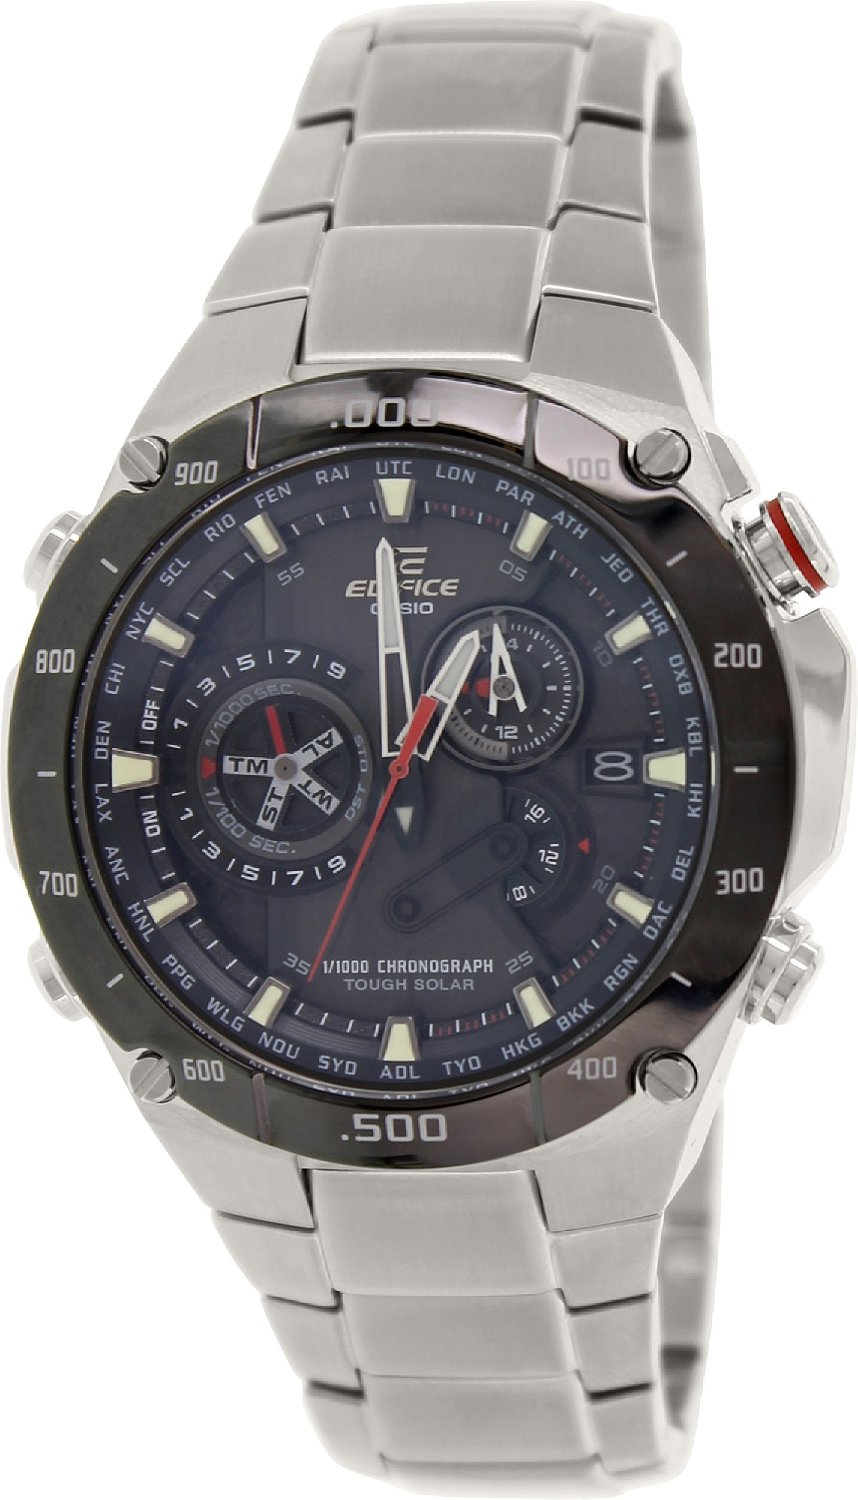 Casio Edifice EQS-1100DB-1AVDR Limited Edition Sports Tough Solar Men Watch